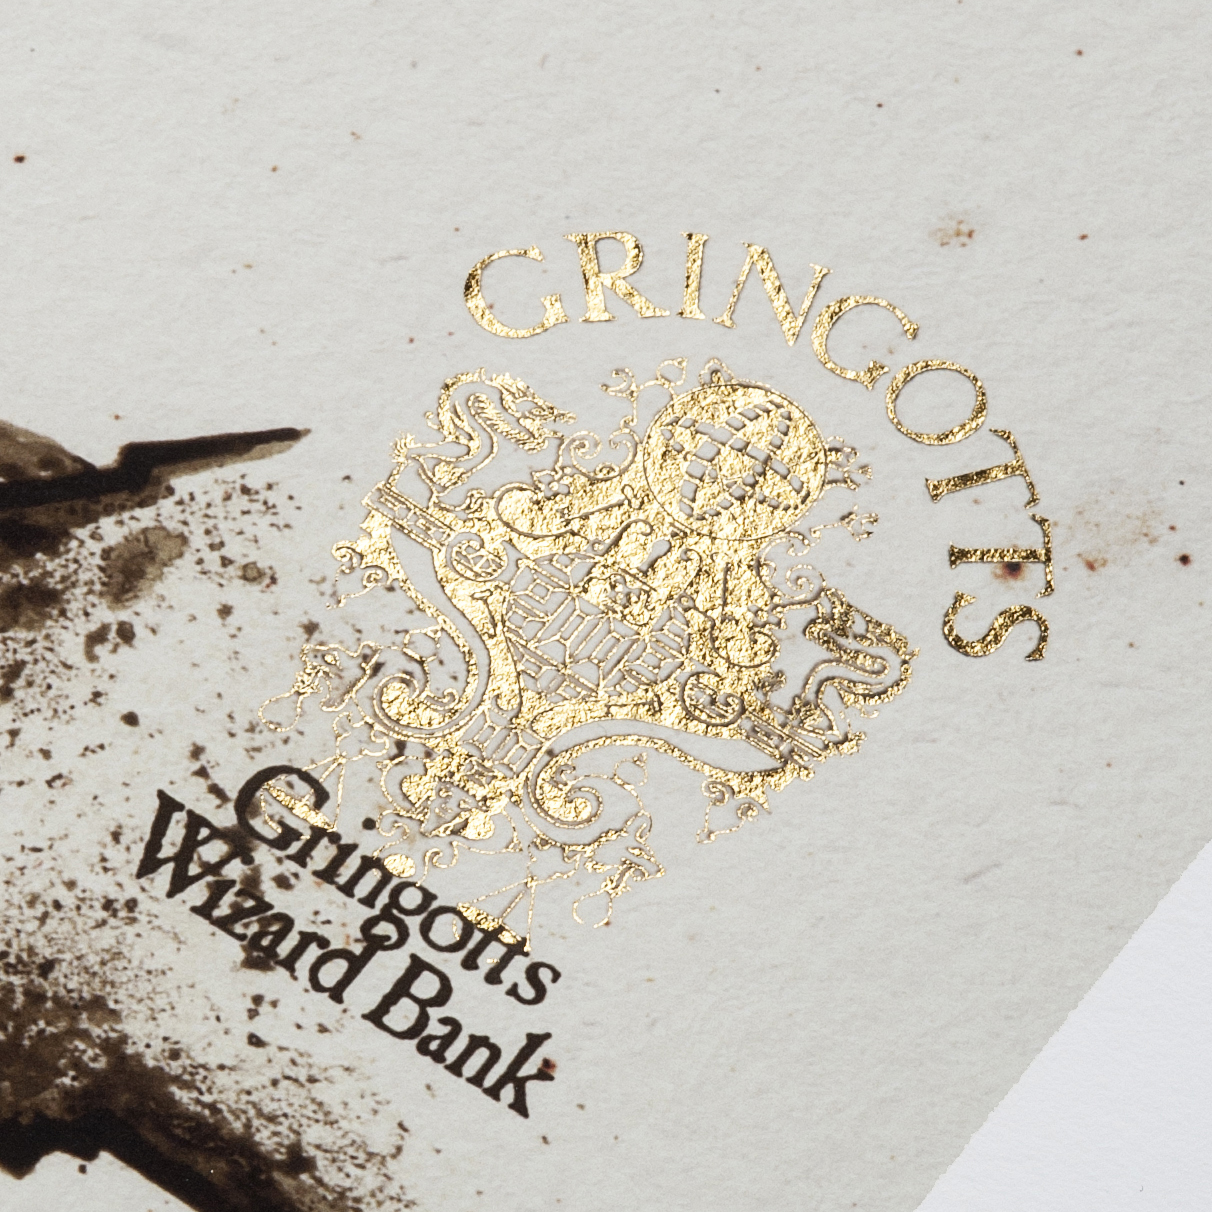 Gringotts wizarding bank detail